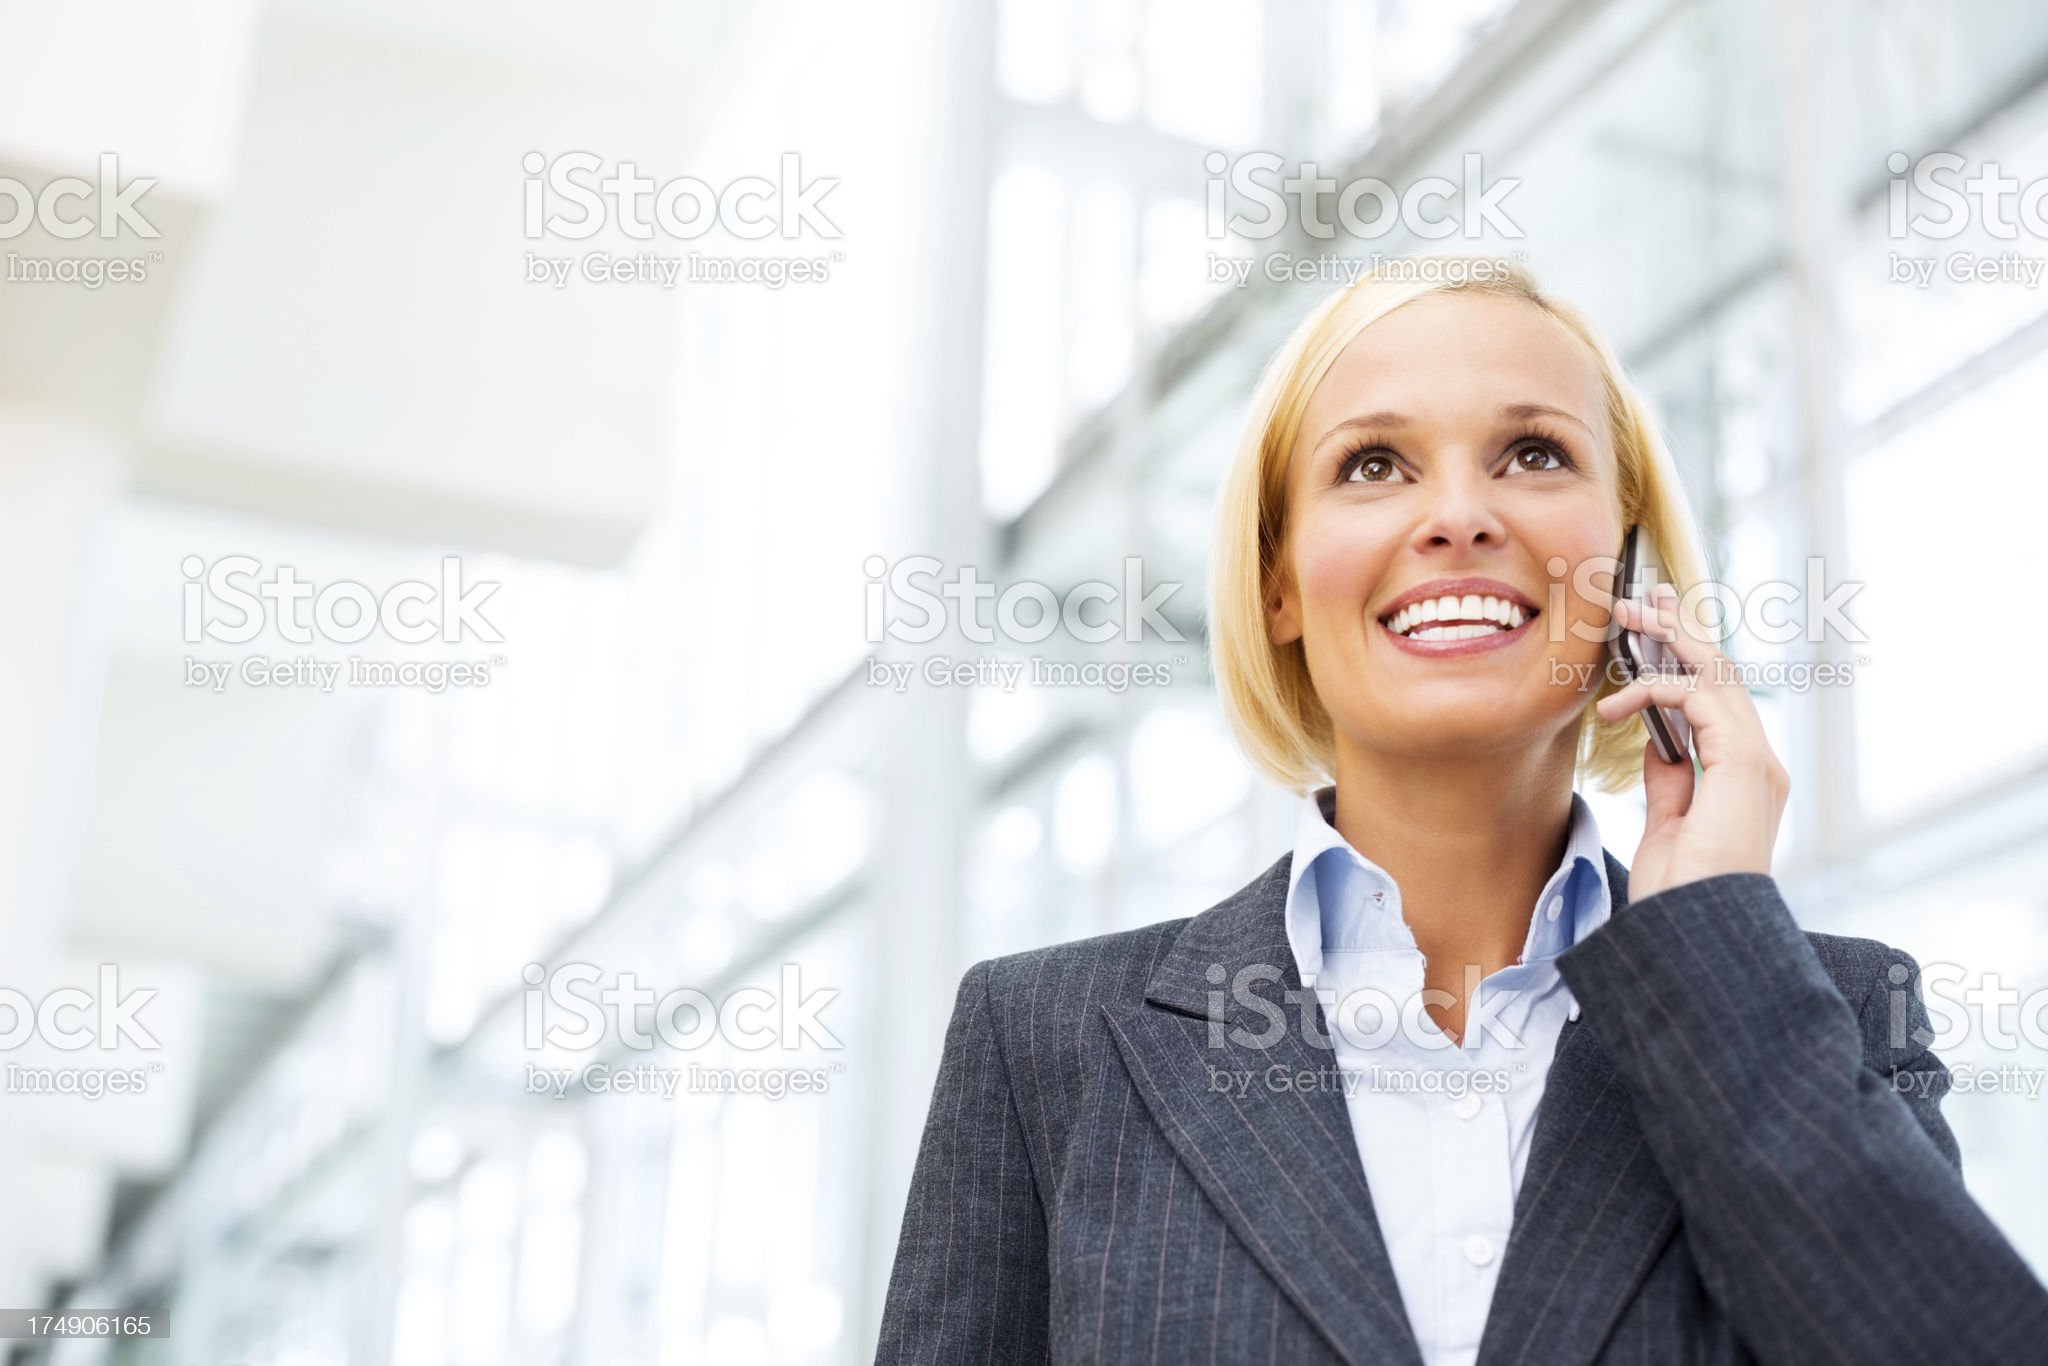 Businesswoman Answering Phone Call royalty-free stock photo